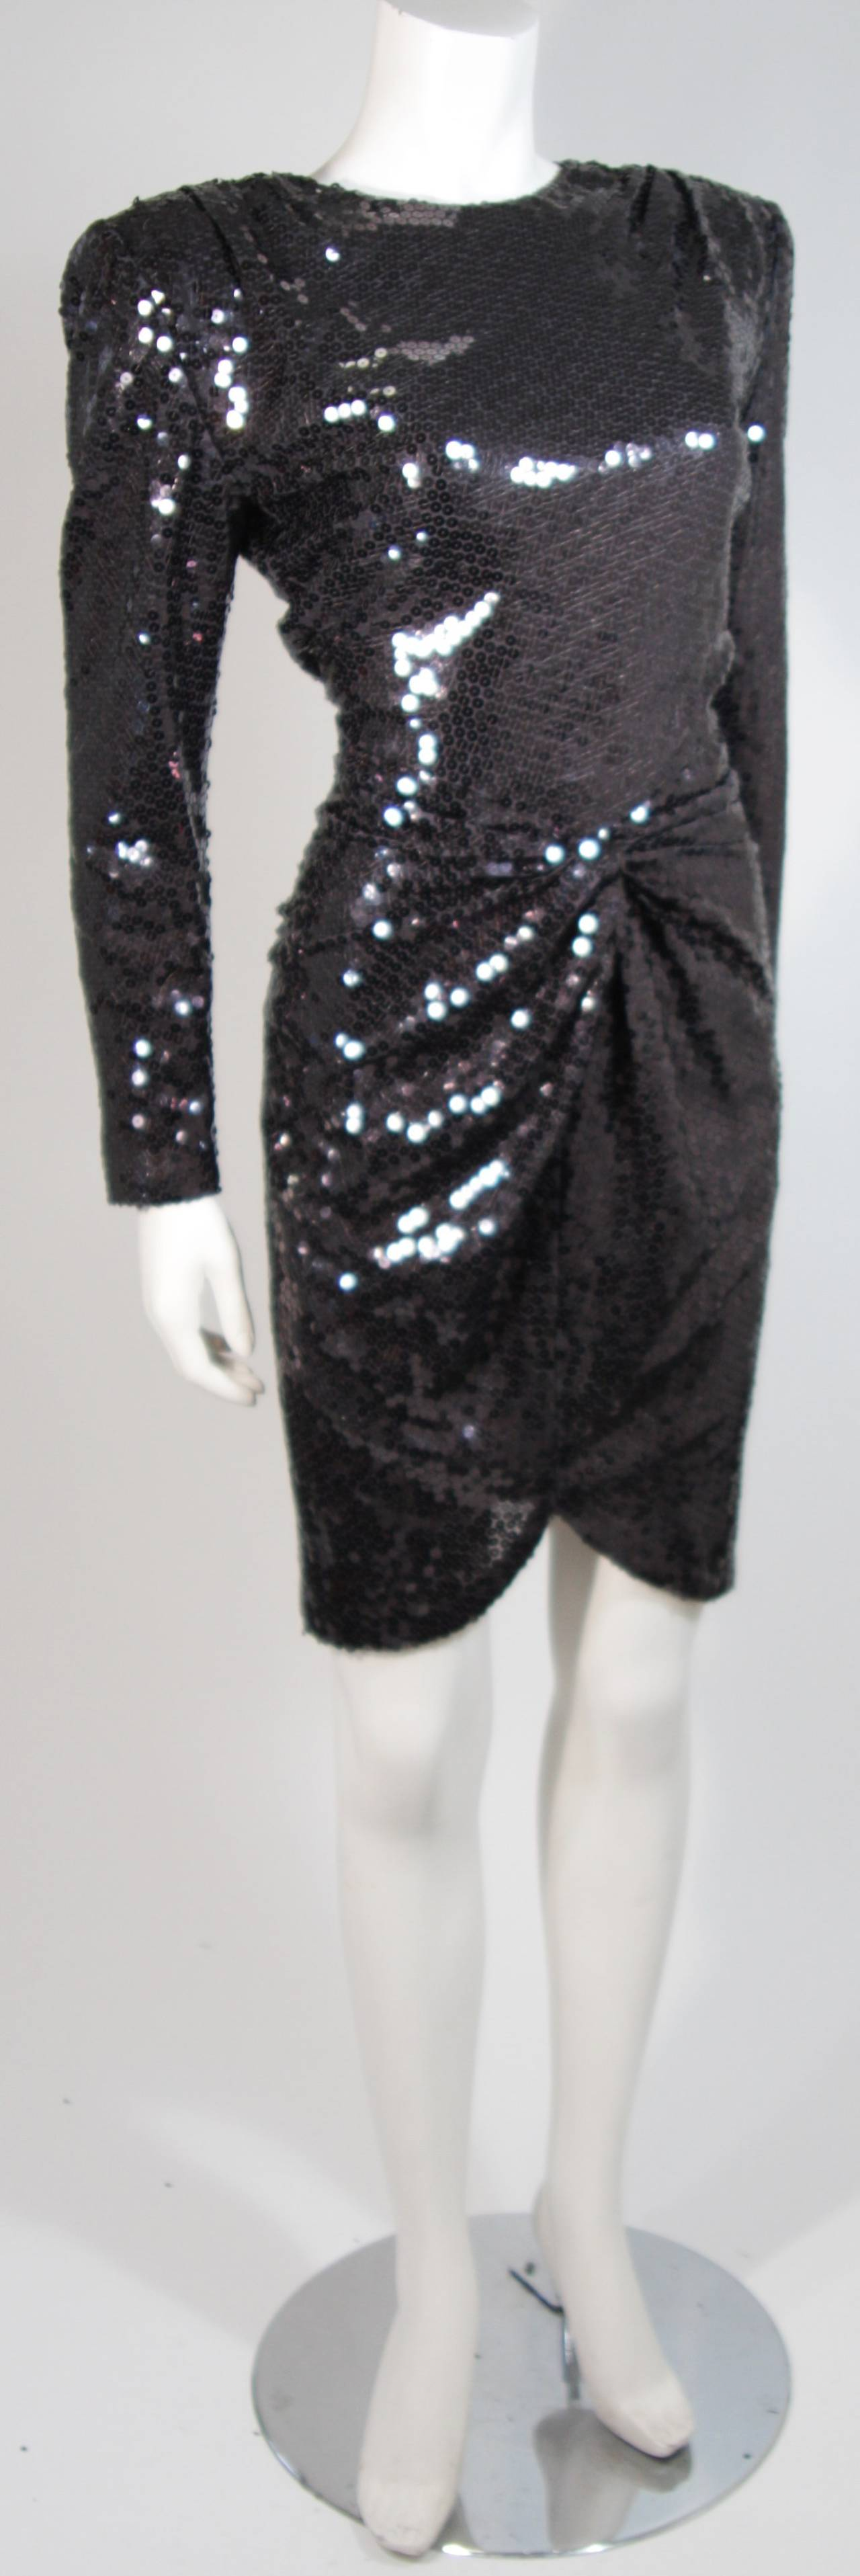 Vicky Tiel Black Iridescent Sequin Cocktail Dress Size 38 4